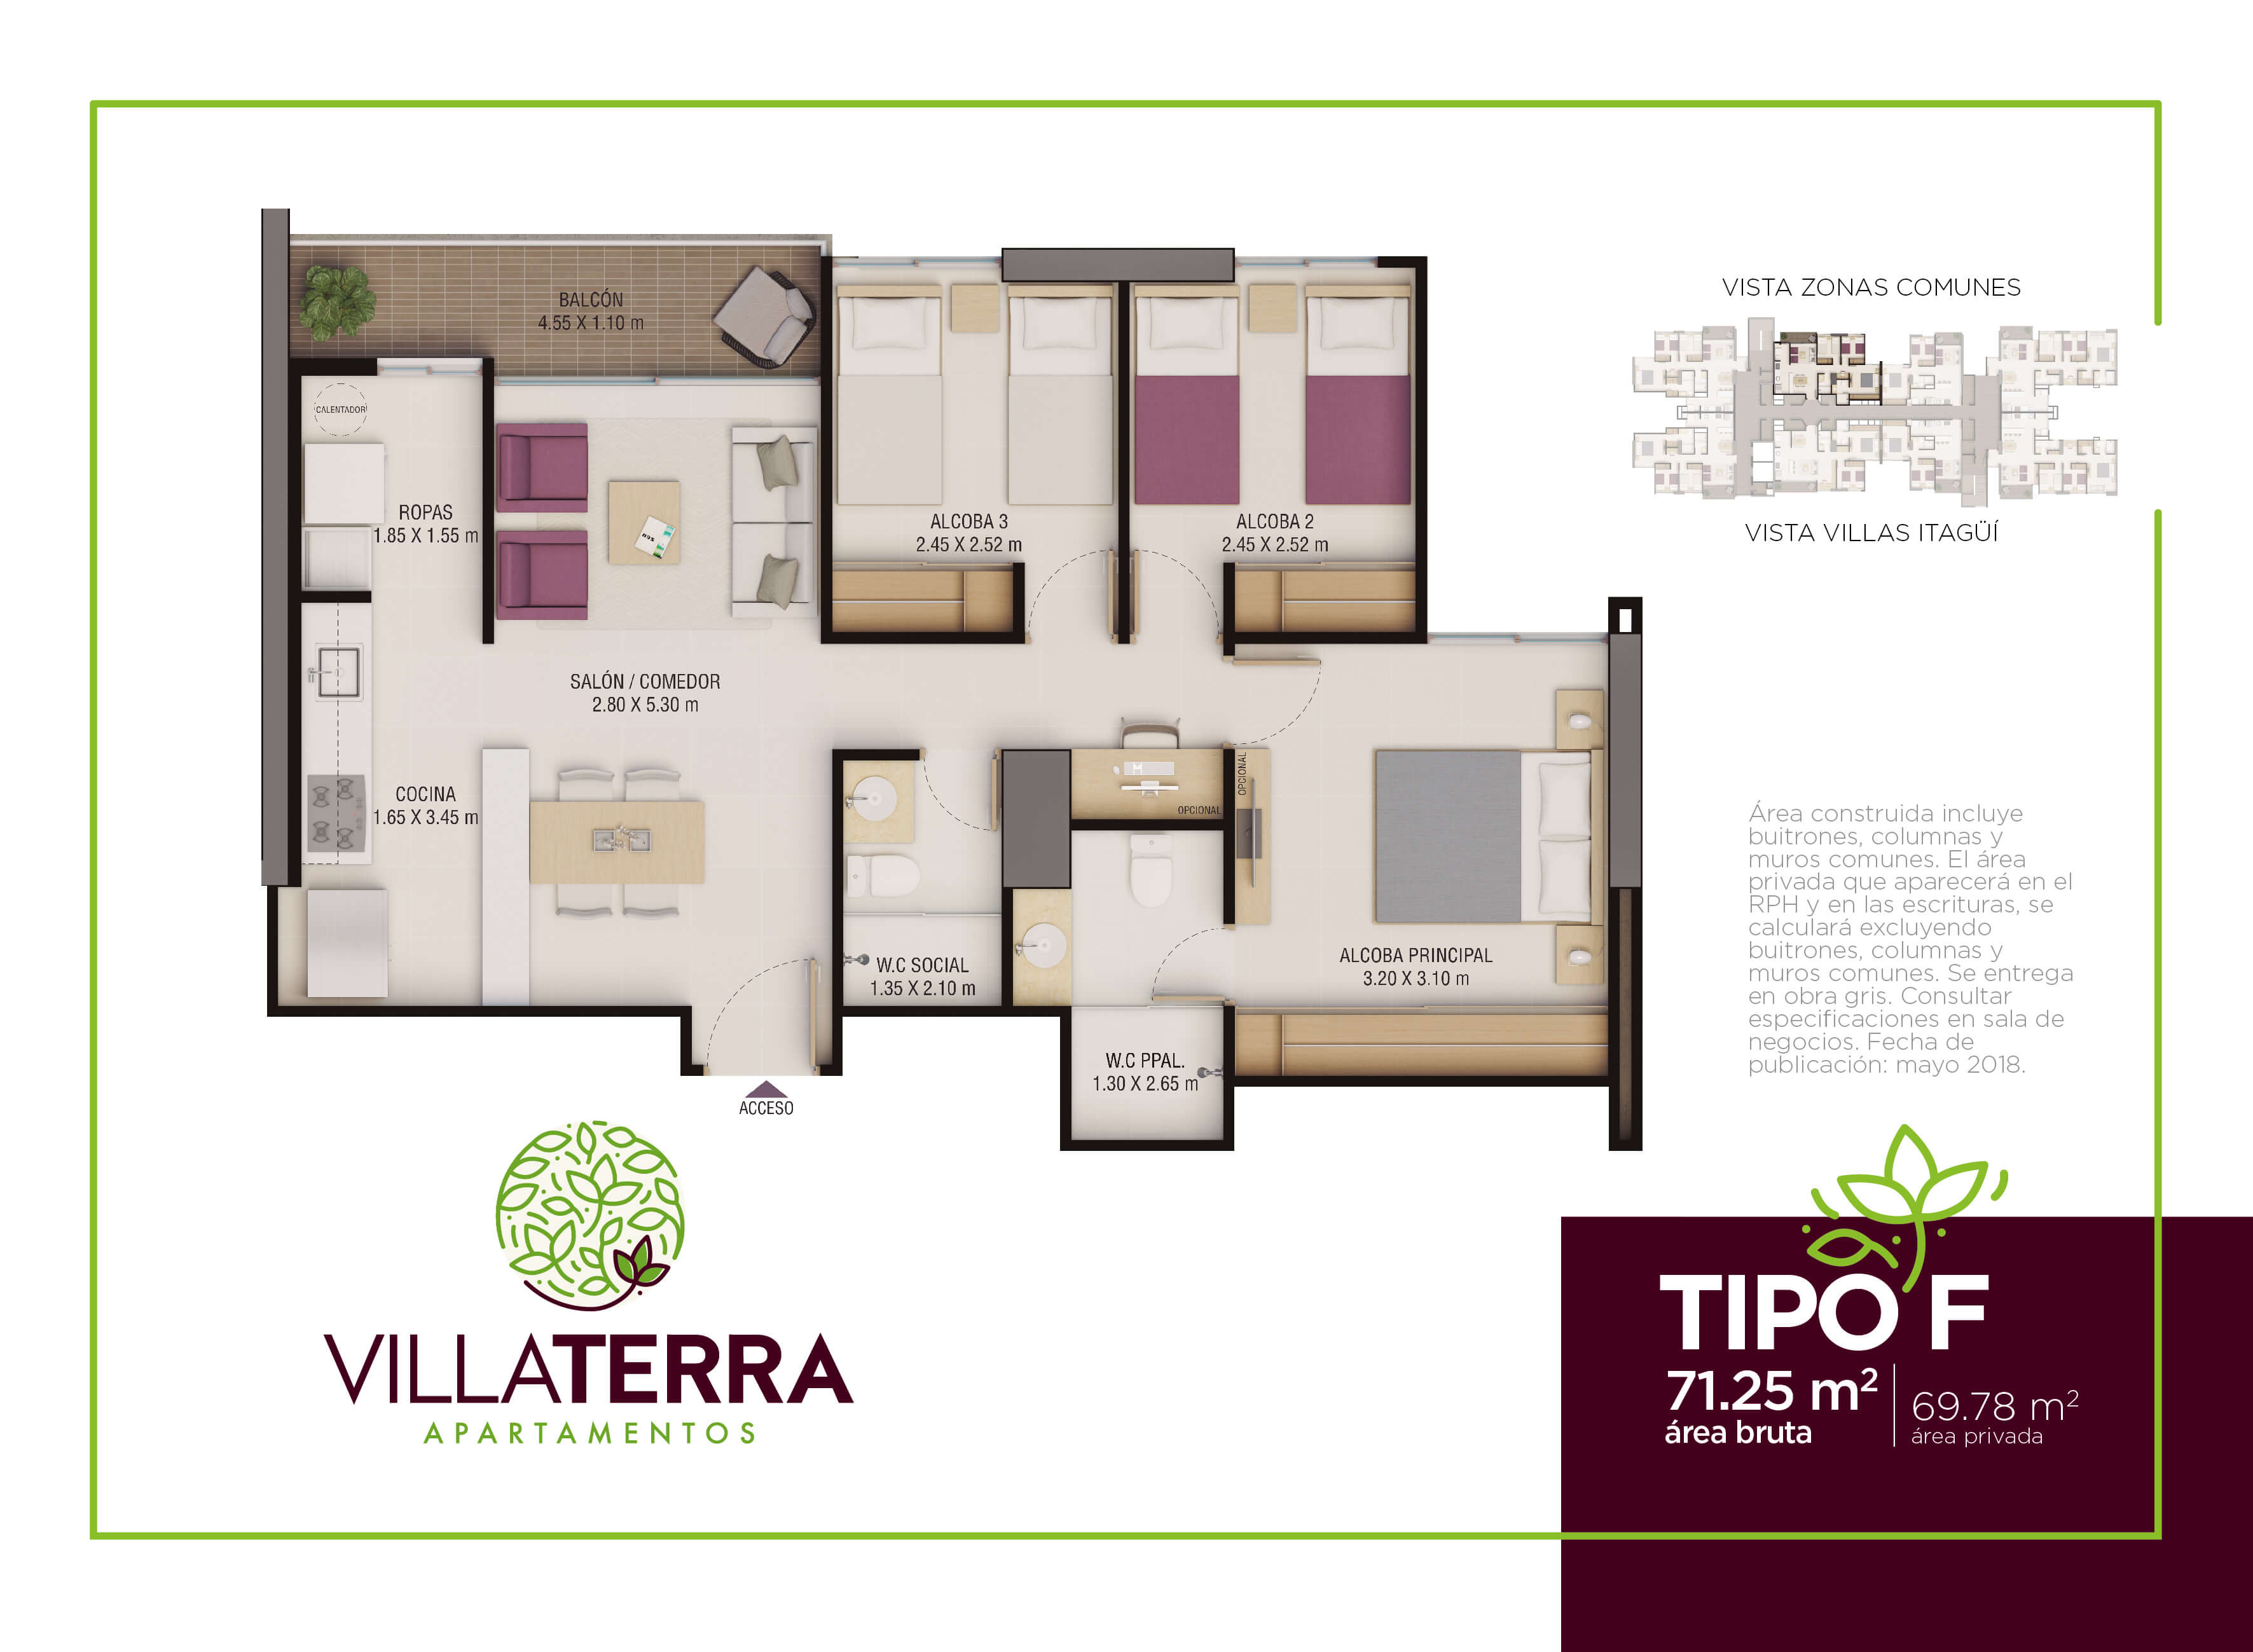 71,25 m2 tipo F